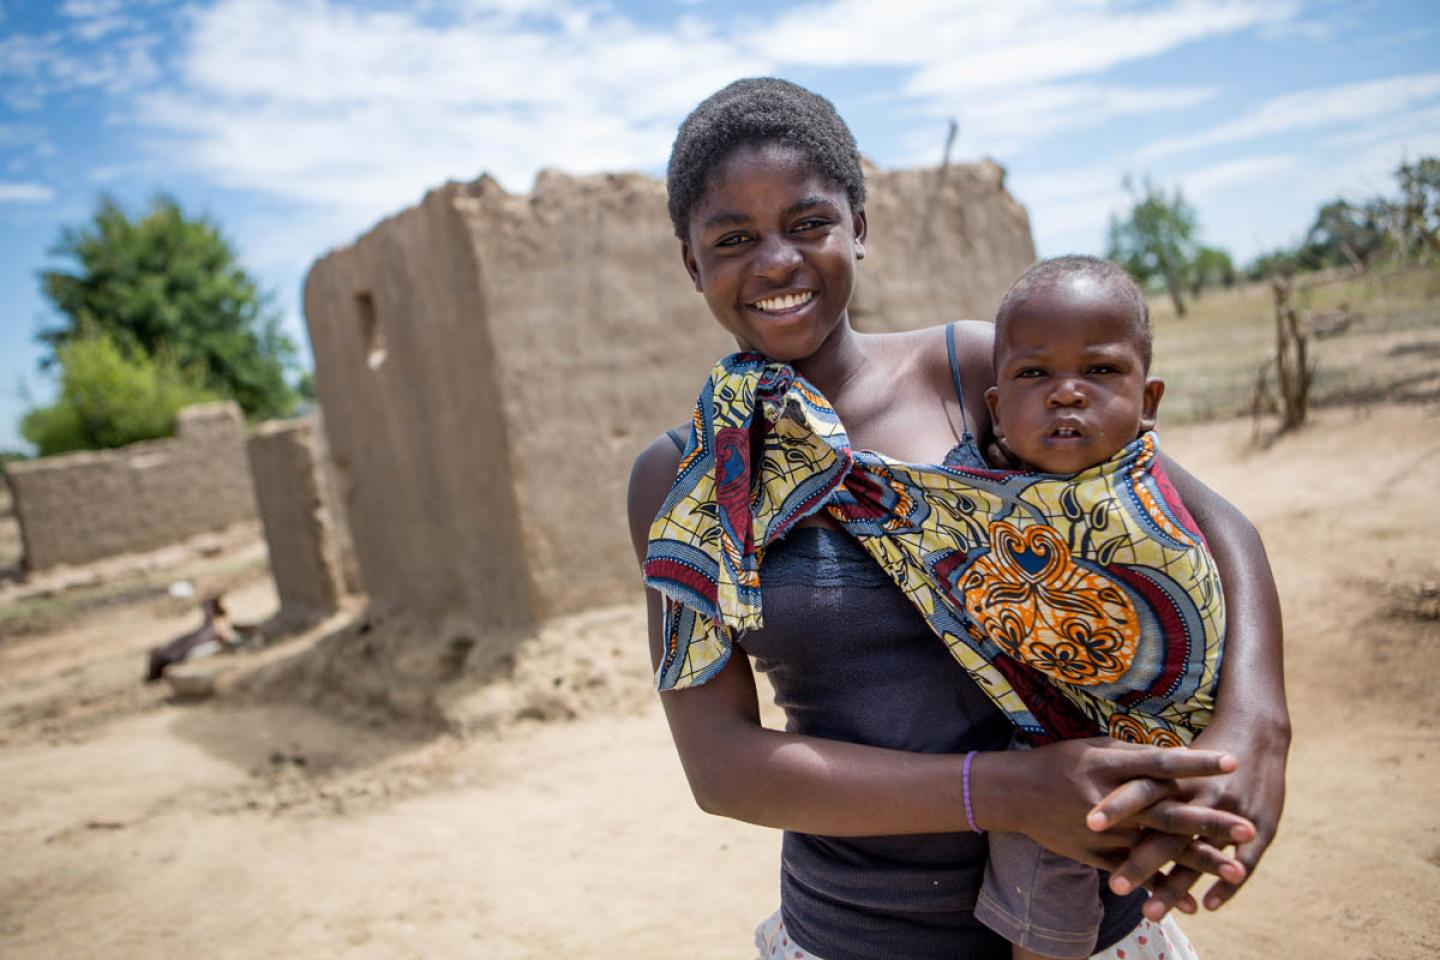 A mother carrying her child in rural Zambia